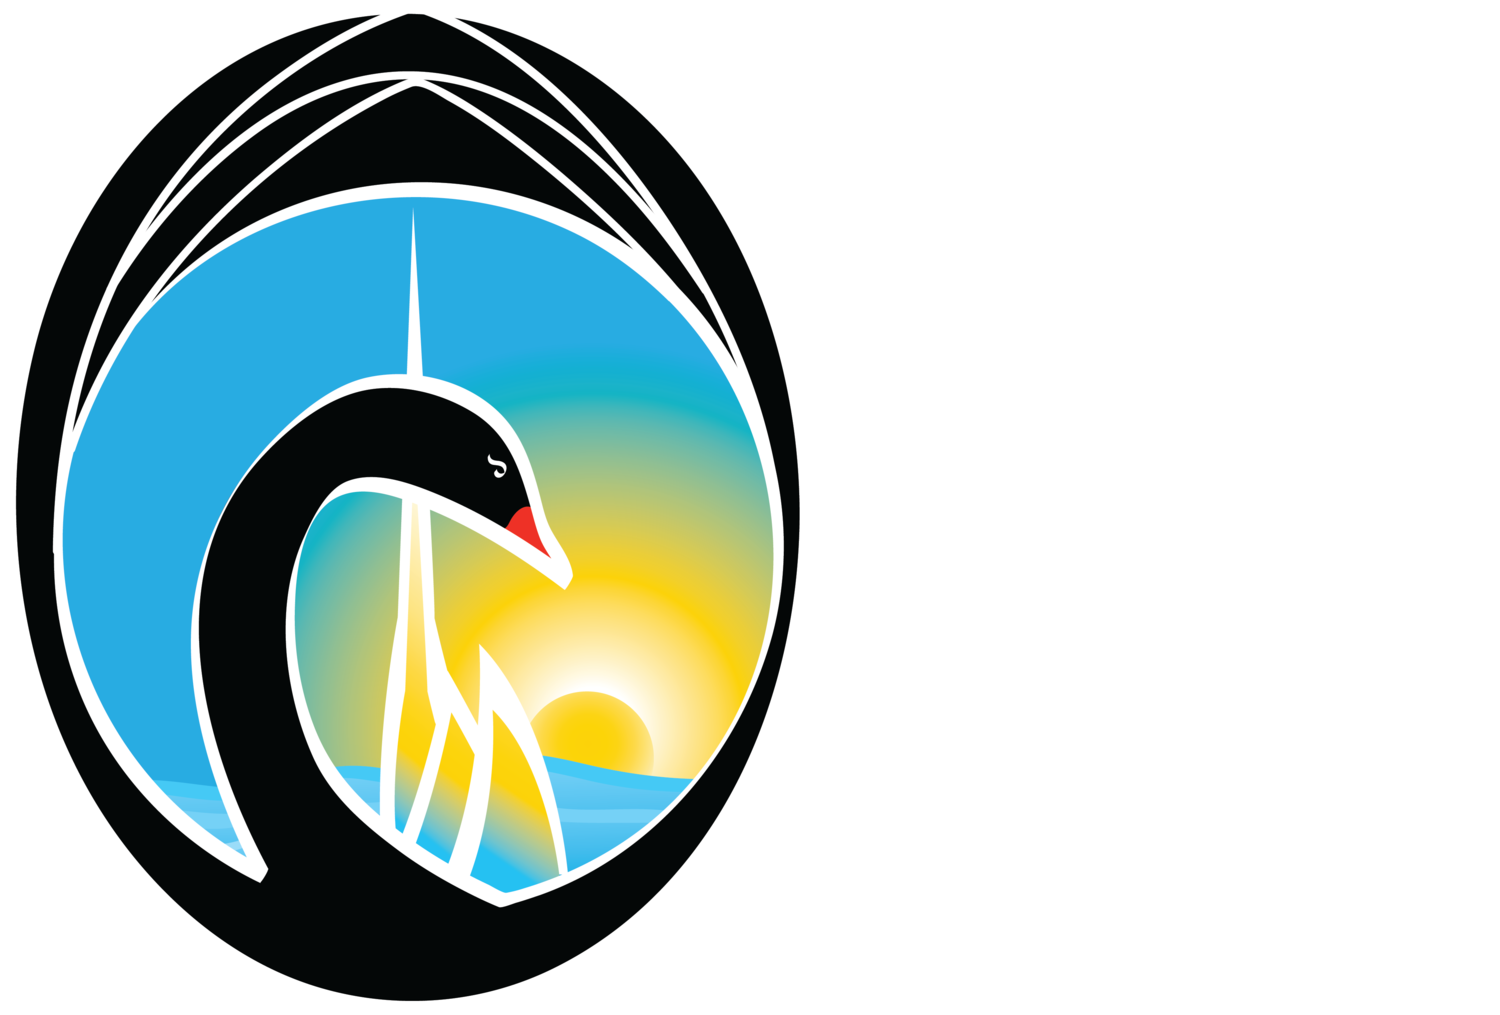 Swan Festival of Lights